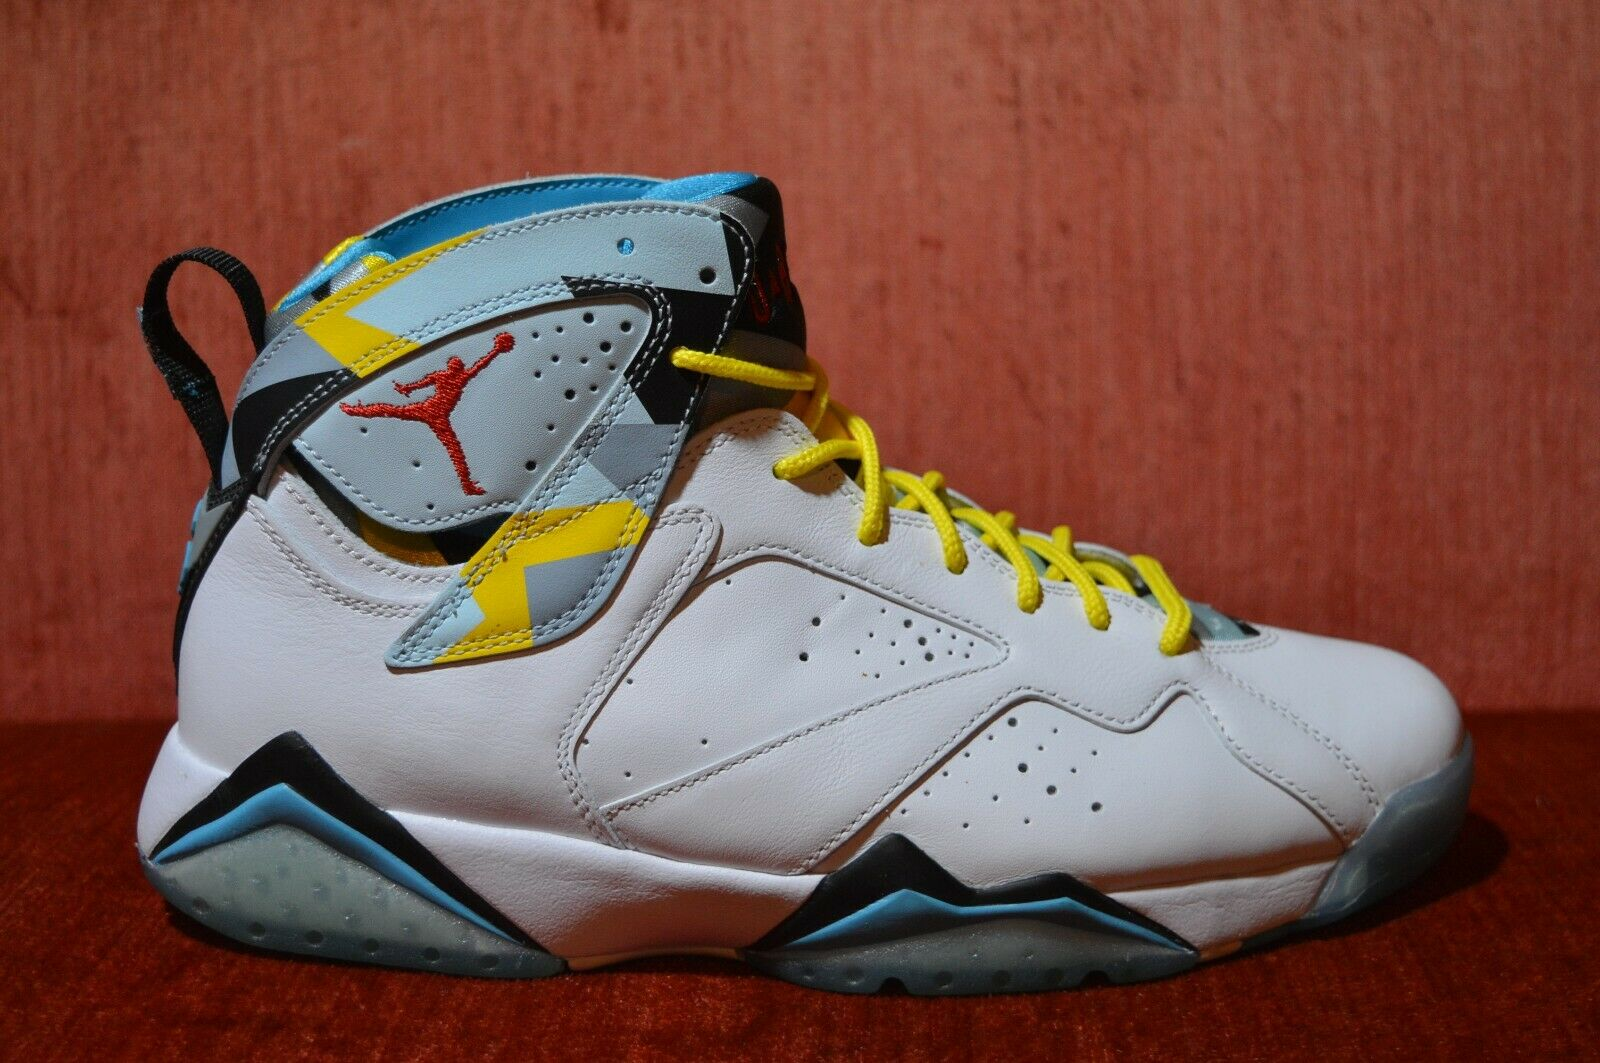 8c6360c275c665 WORN TWICE Nike Air Jordan 7 Retro N7 White White White Ice bluee 744804-144